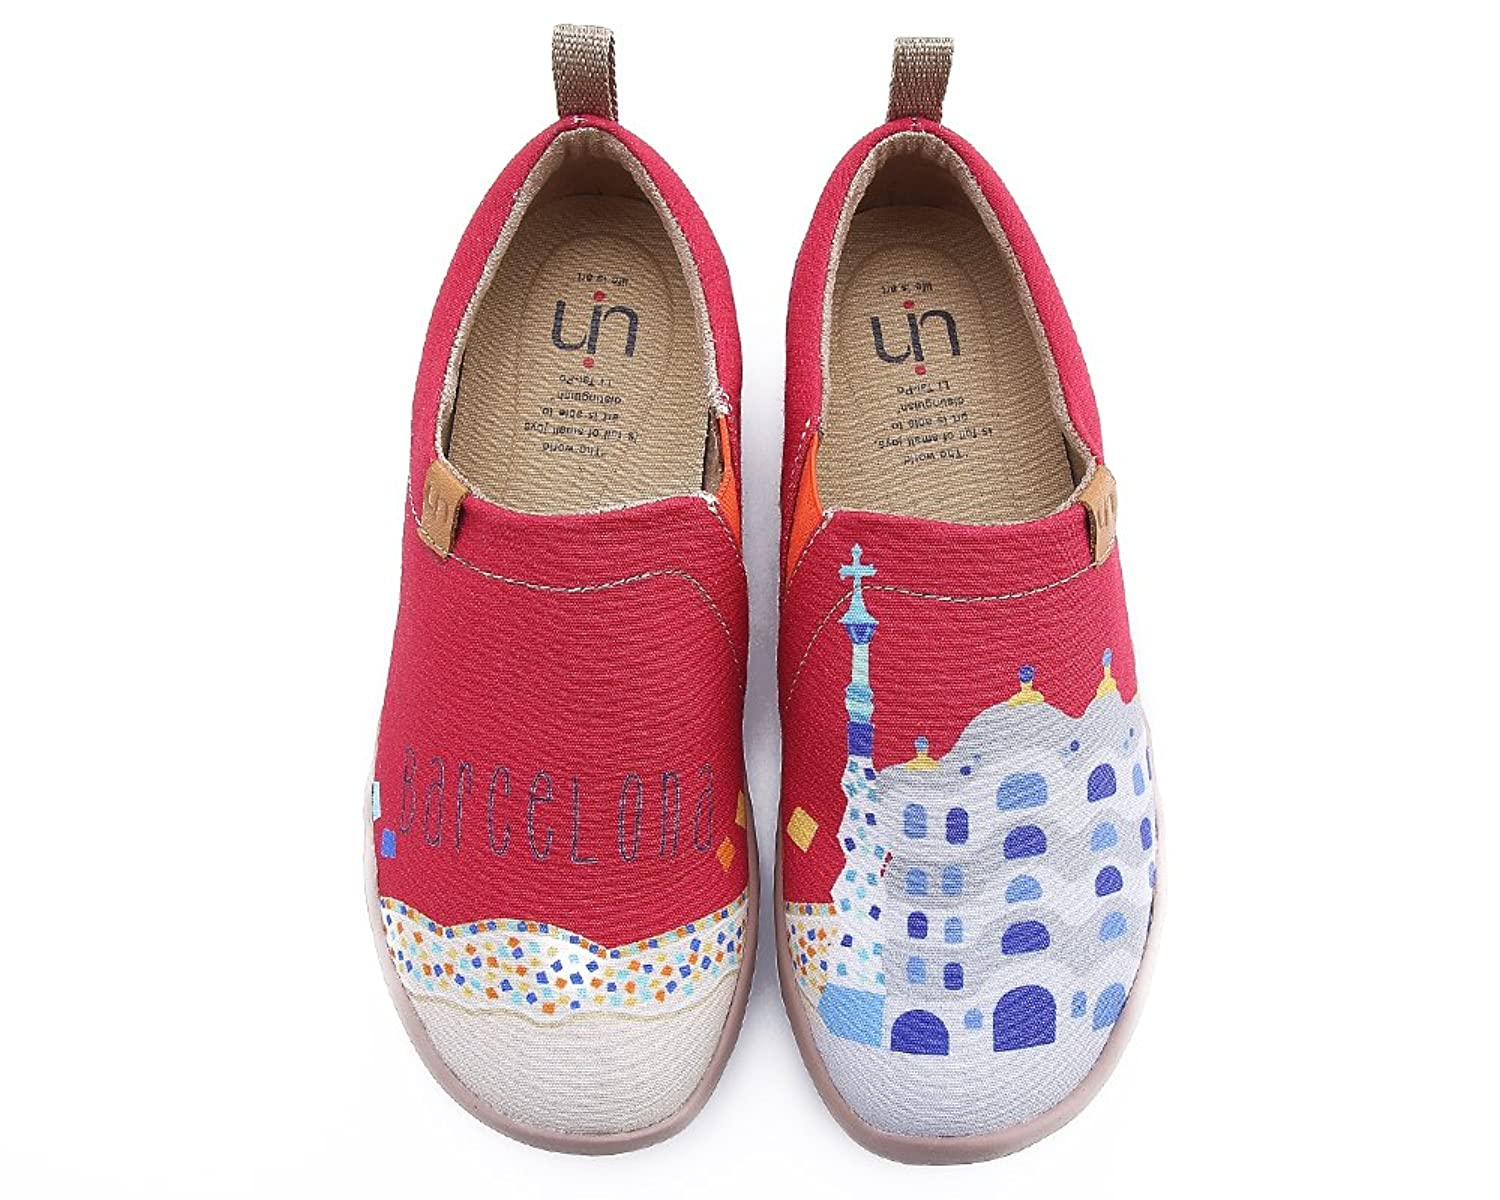 UIN Women's Castle Cute Painted Canvas Shoes Red B07CVJ9VCD 8.5 M US